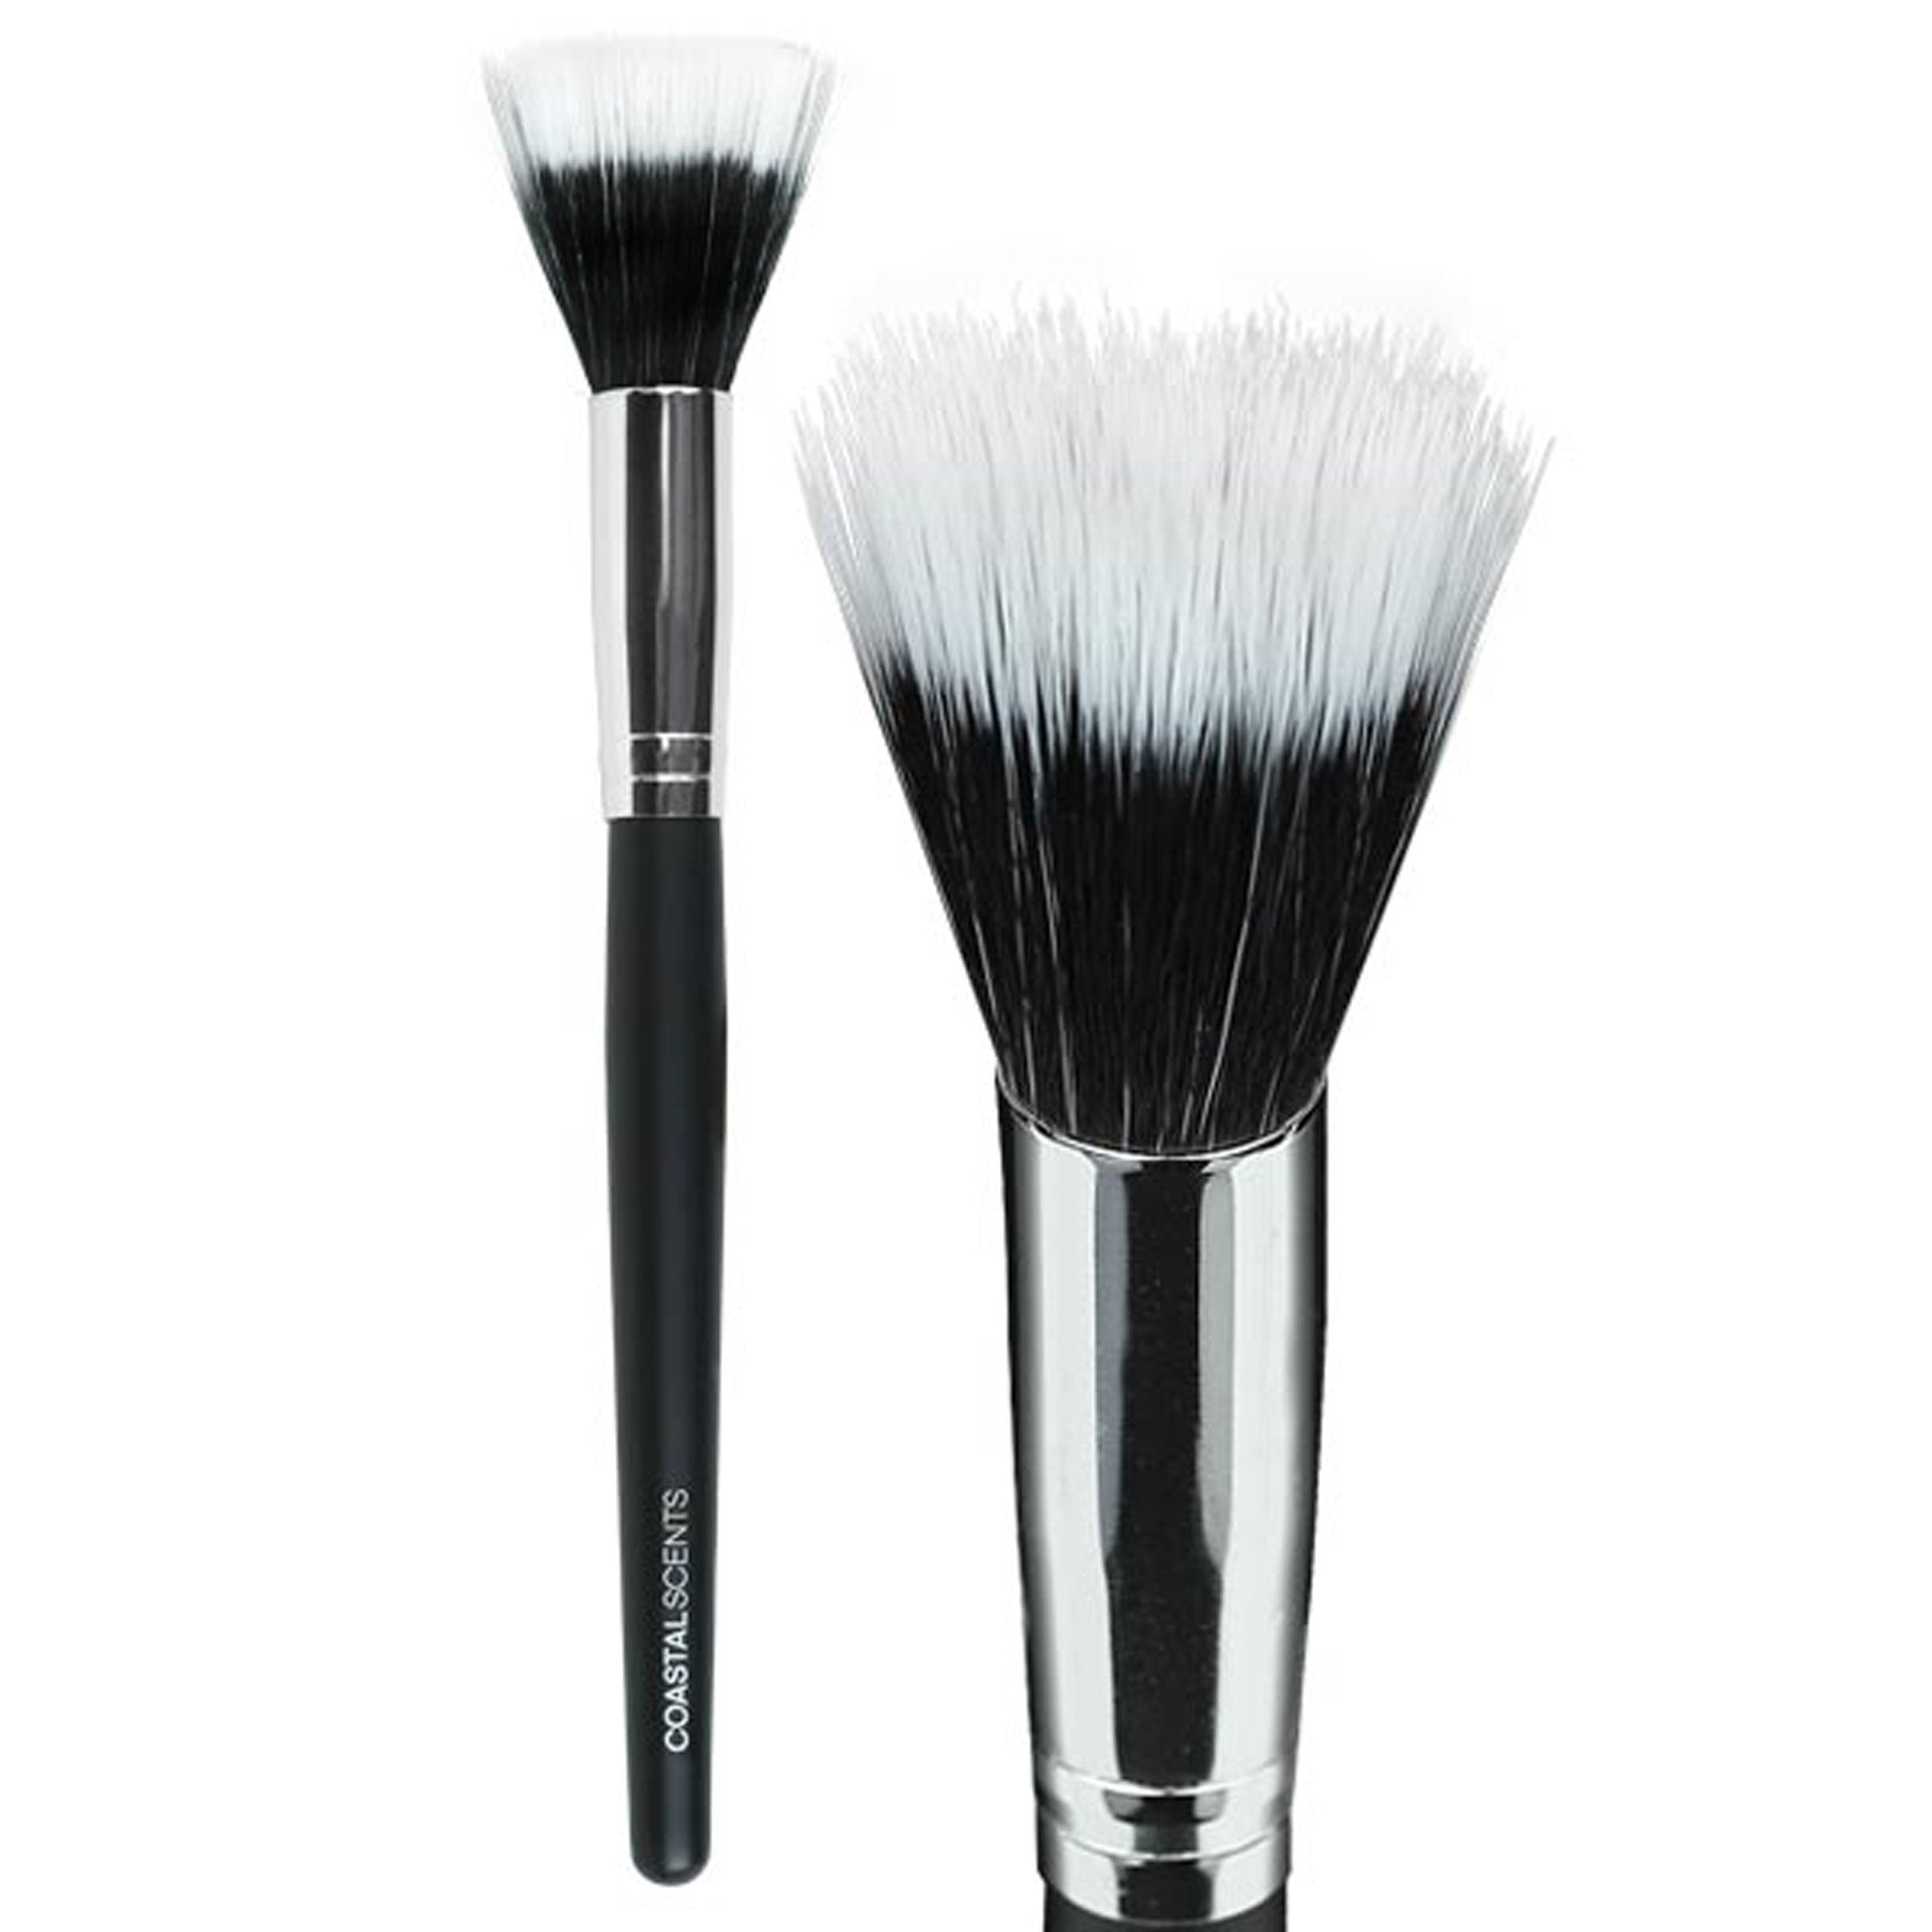 Coastal Scents coupon: Classic Stippling Brush Medium Synthetic